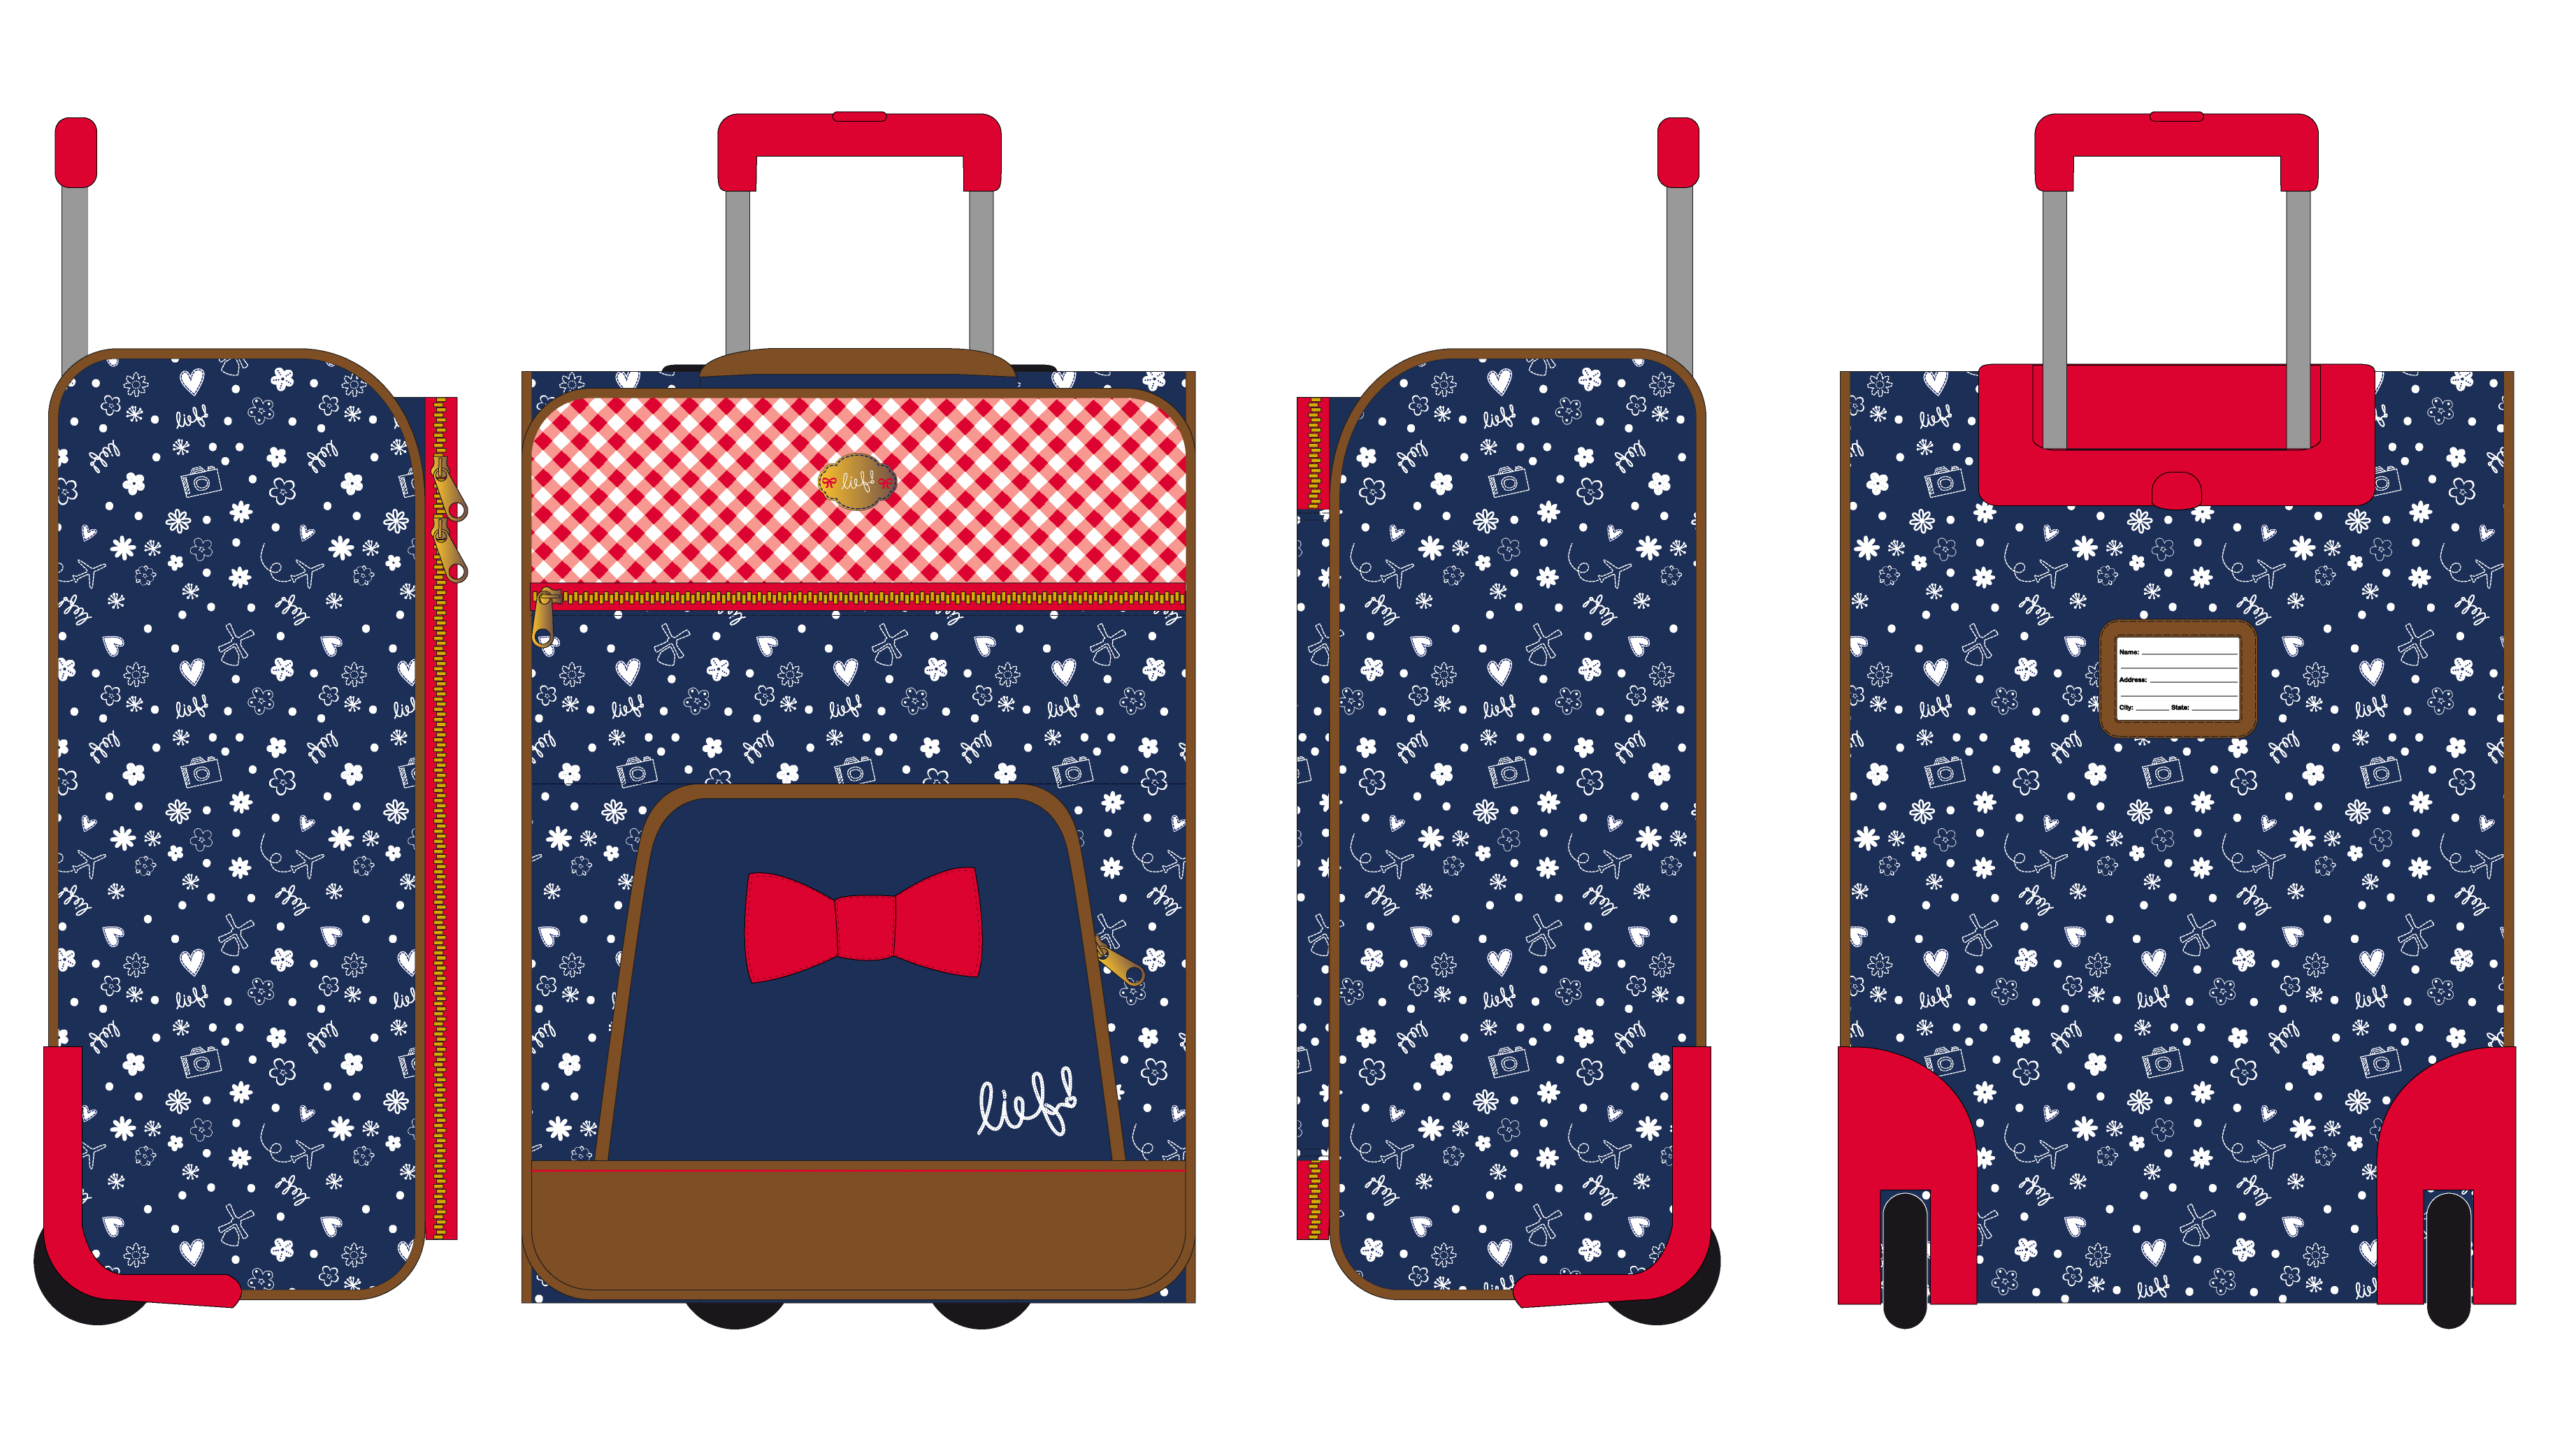 Travel bags lief! lifestyle